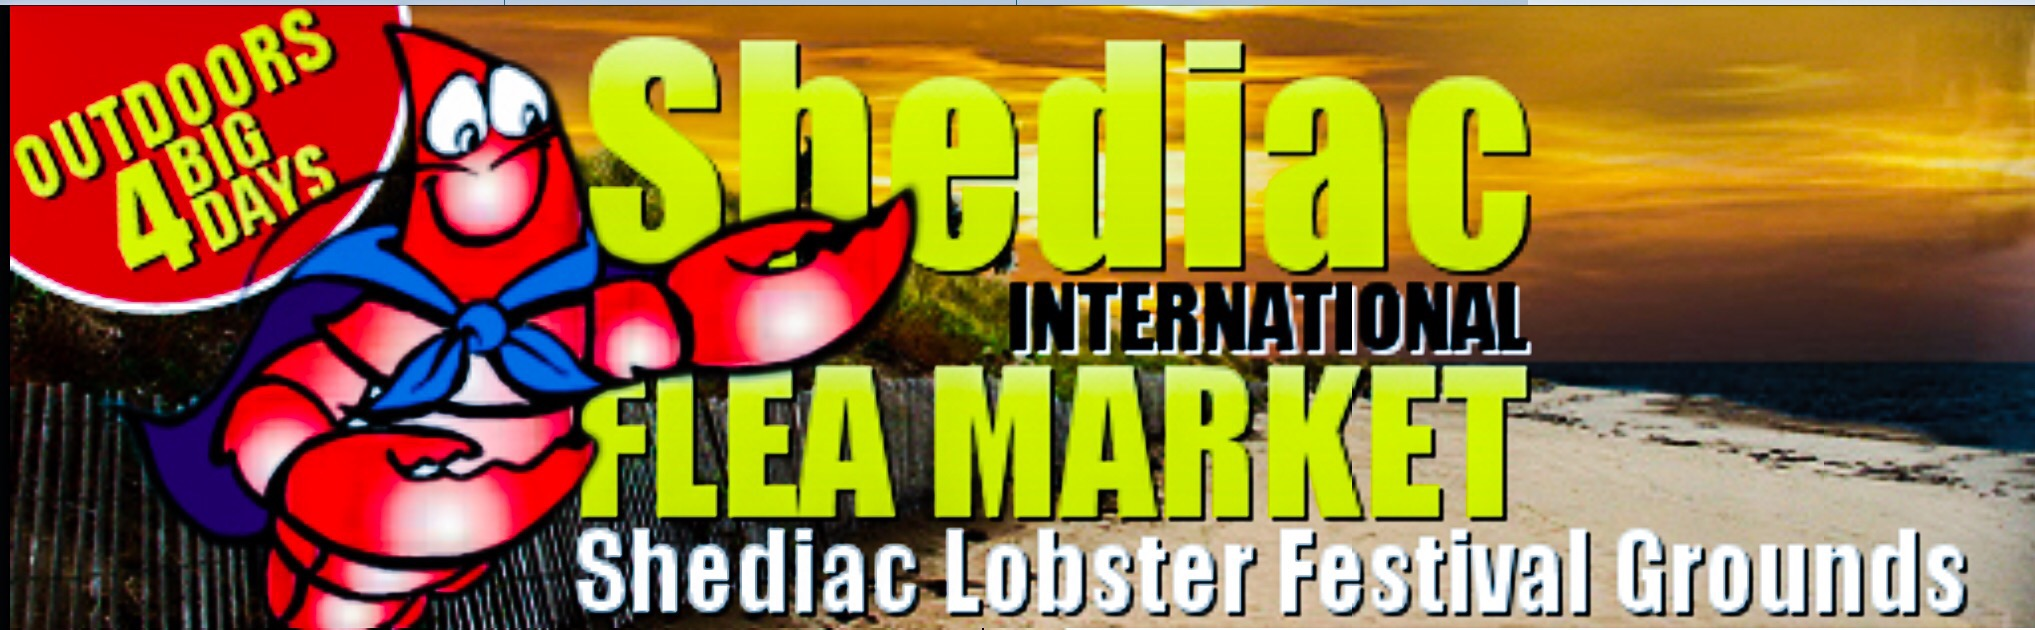 Shediac International Flea Market Website